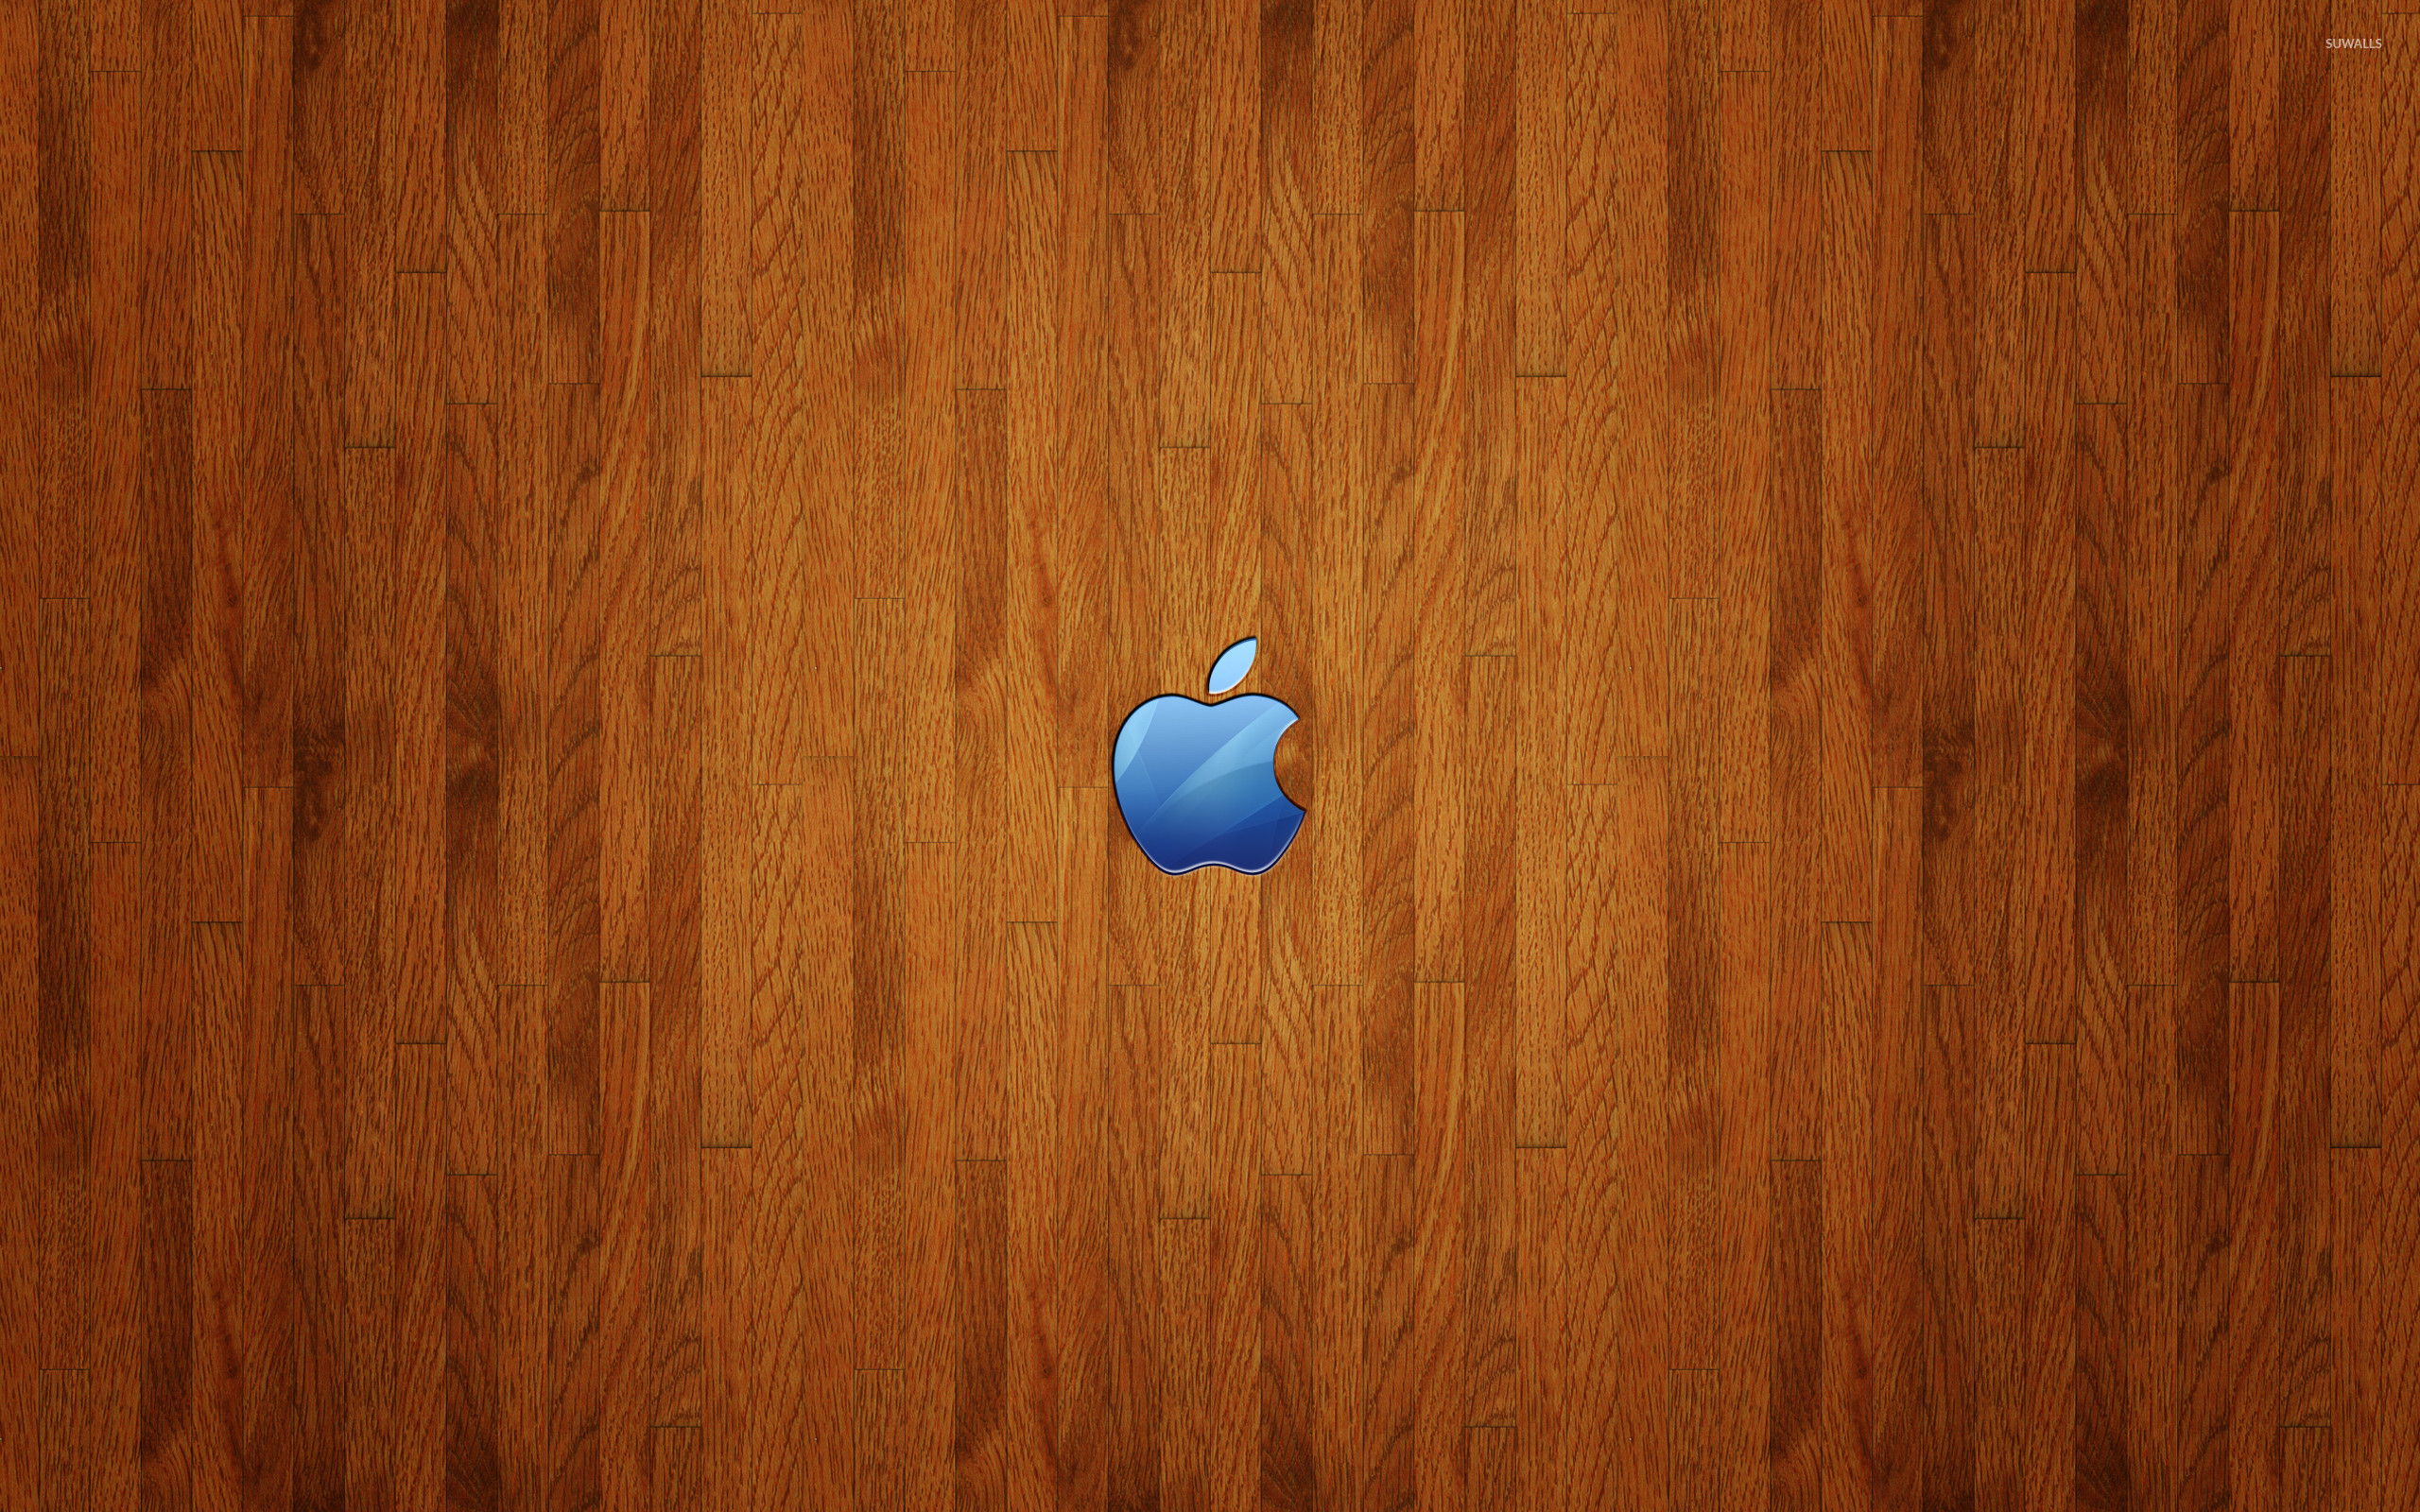 2560x1600 Blue Apple logo on wood wallpaper